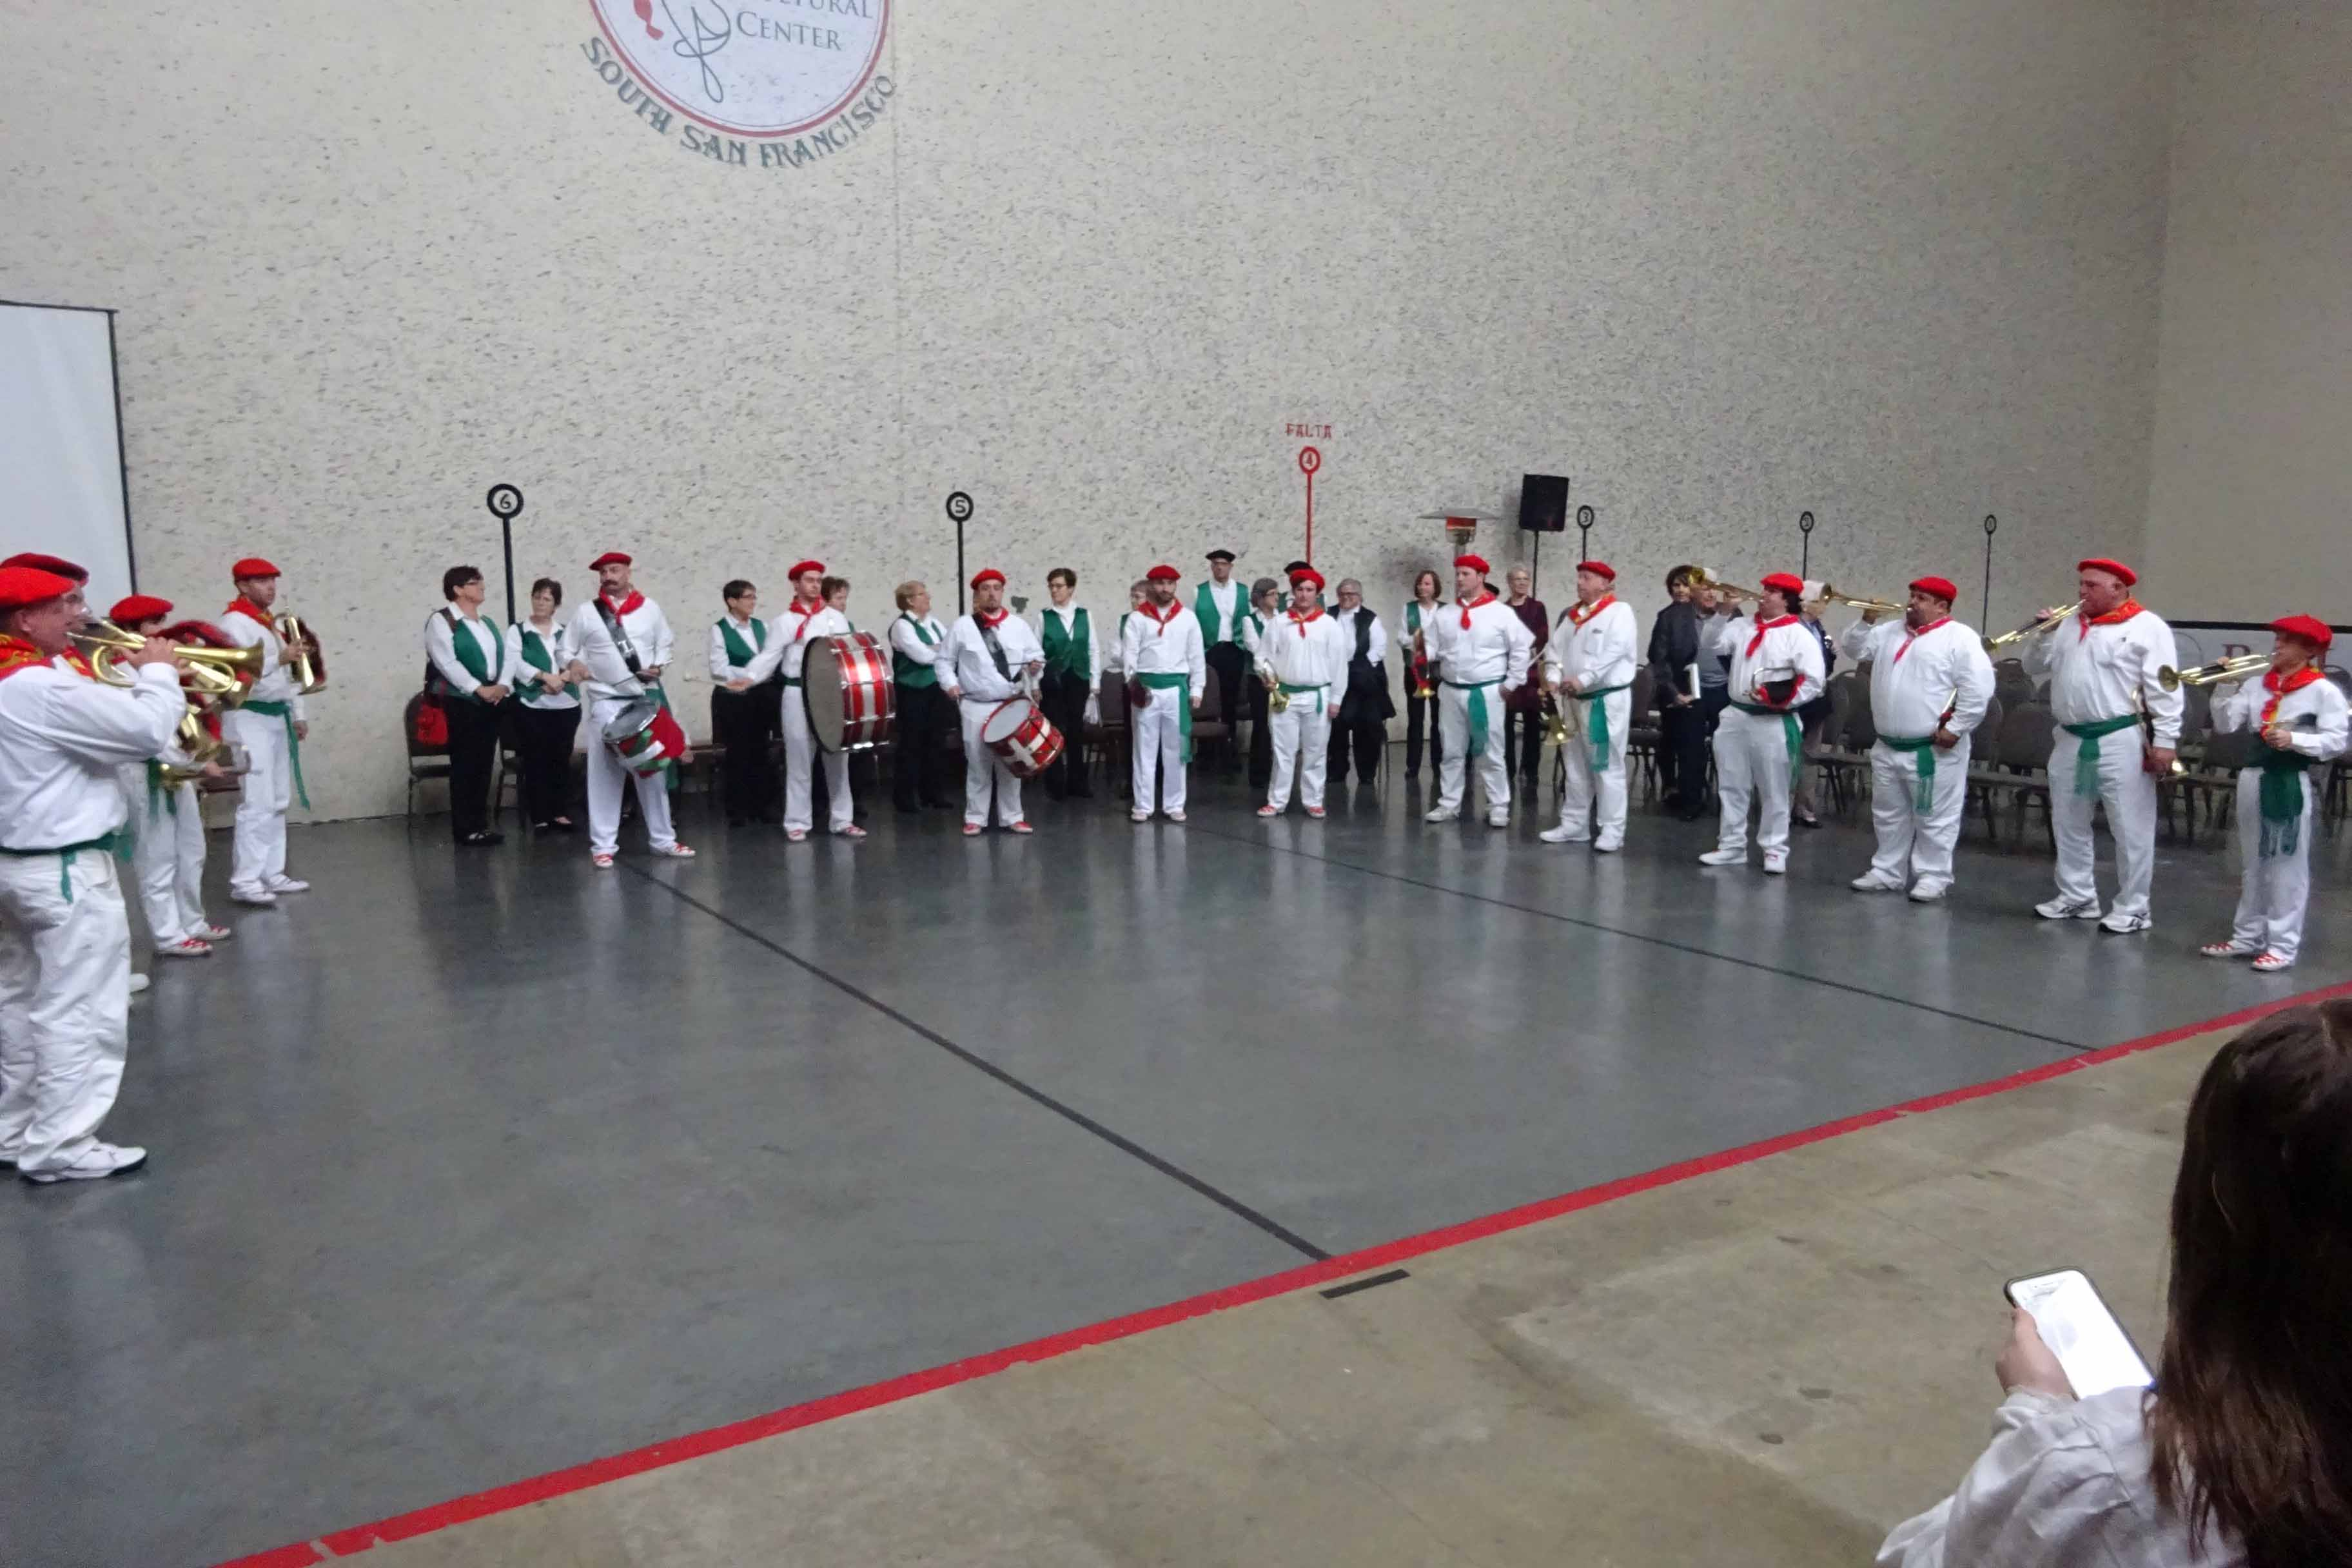 The San Francisco Klika is also part of the program of activities for the Basque Cultural Center's 38th anniversary